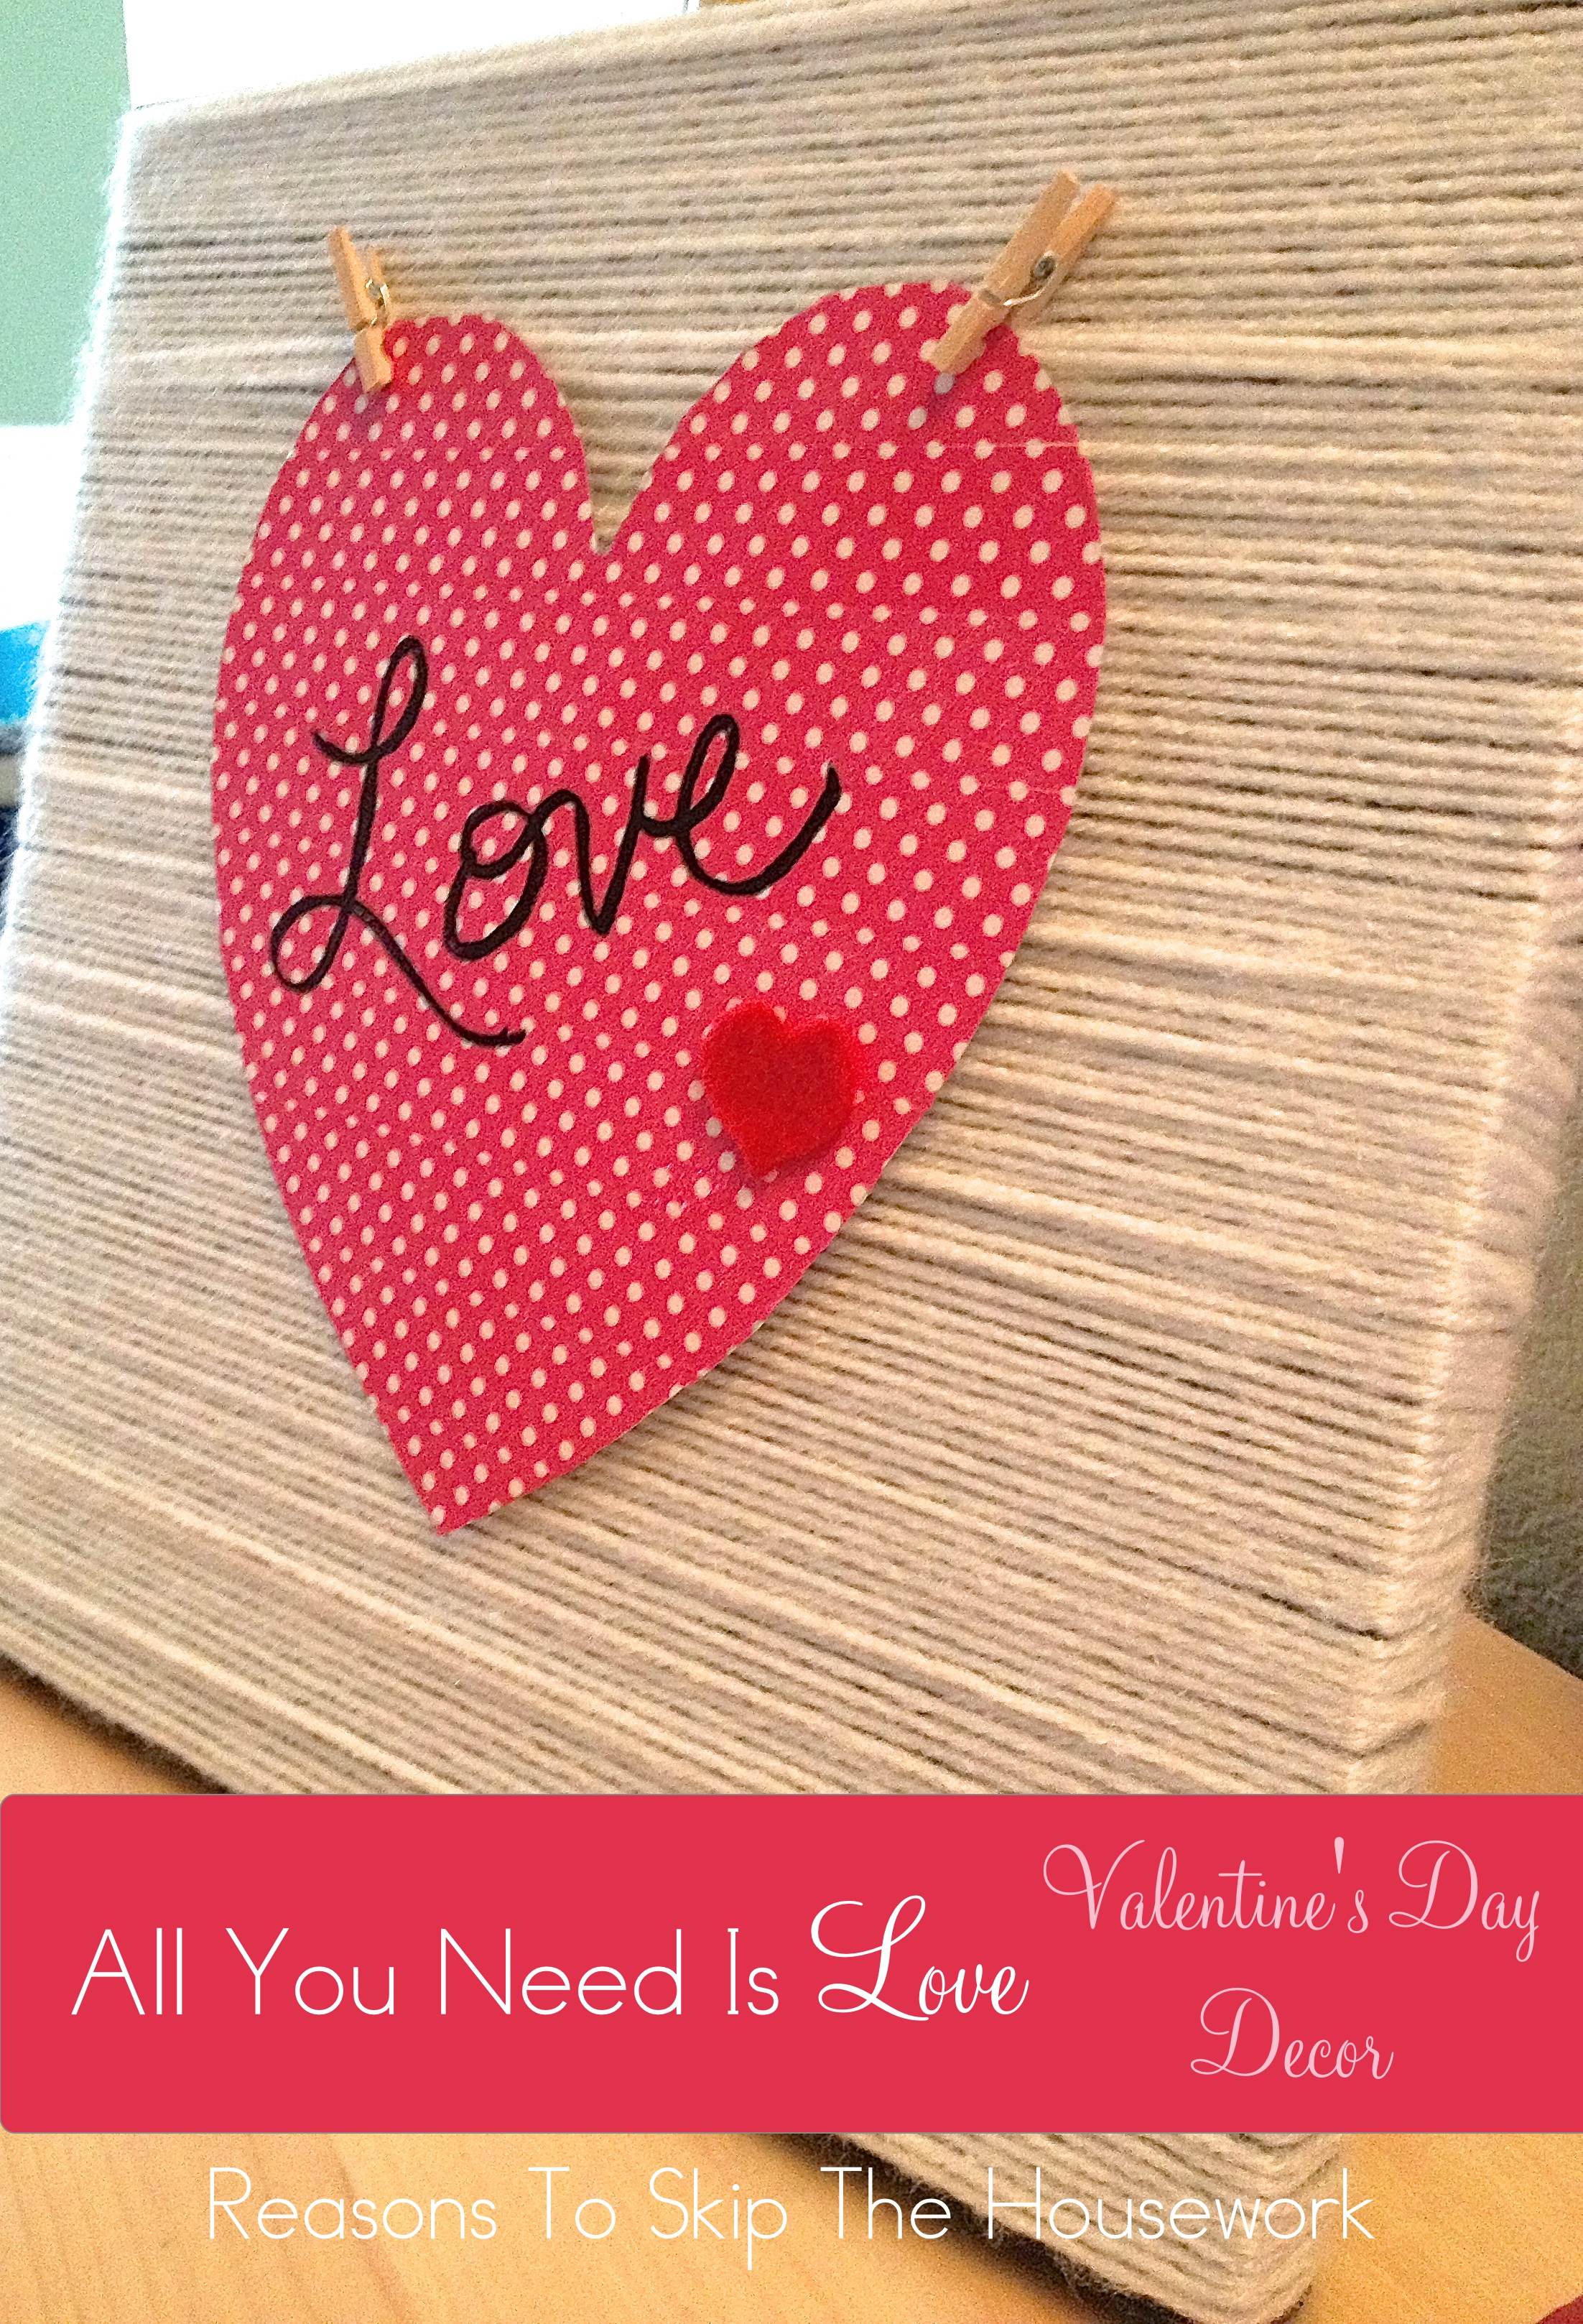 All You Need Is Love Valentine's Sign {Reasons To Skip The Housework}